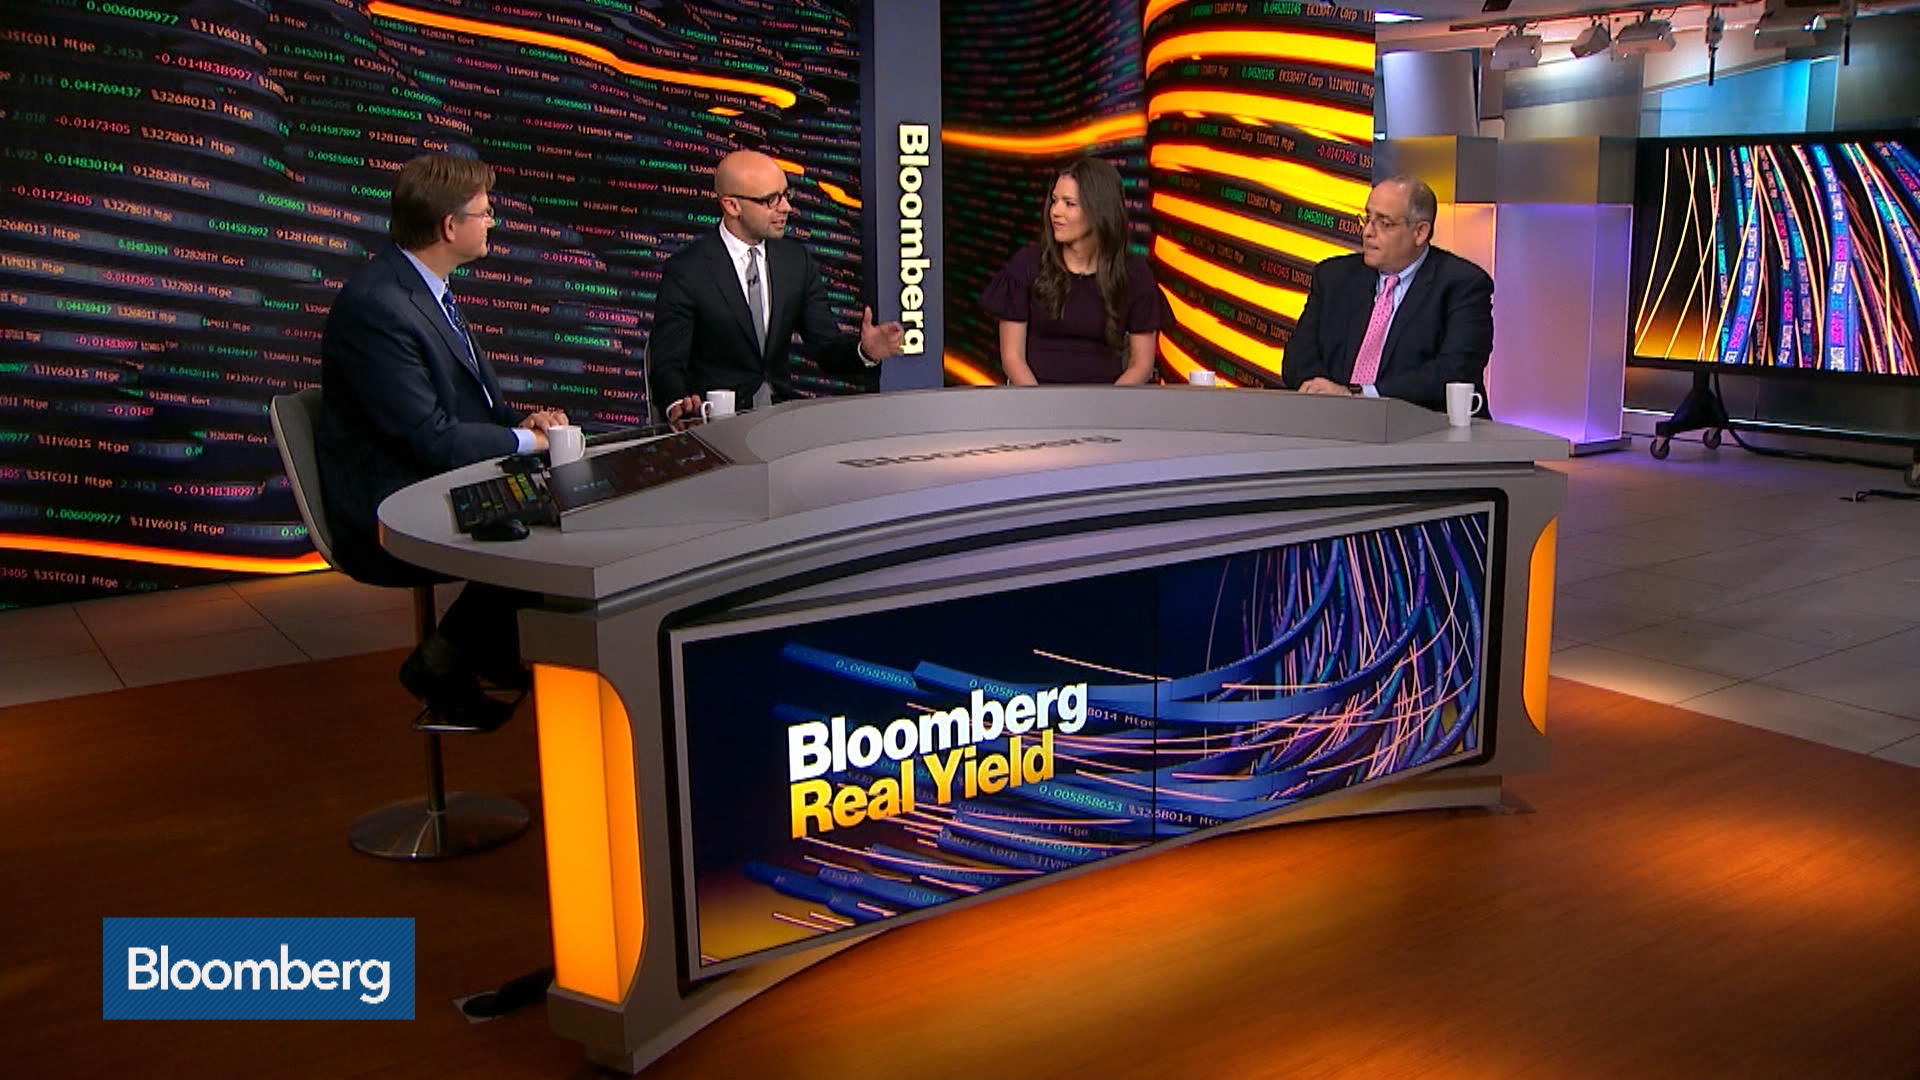 https://www bloomberg com/news/videos/2018-11-25